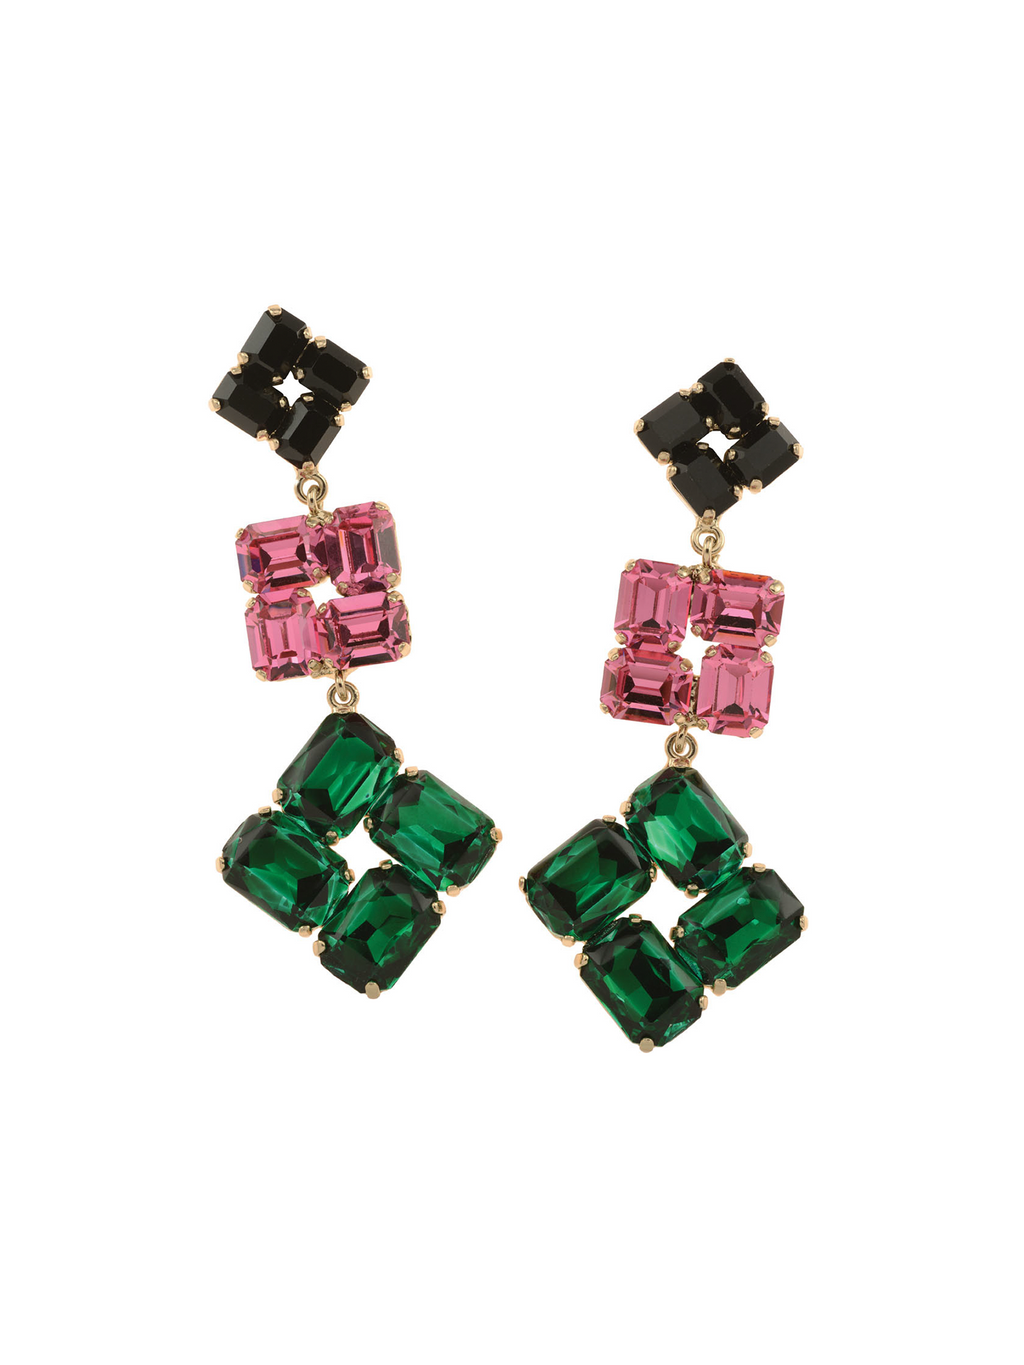 Rebekah Price Ravenna Earrings